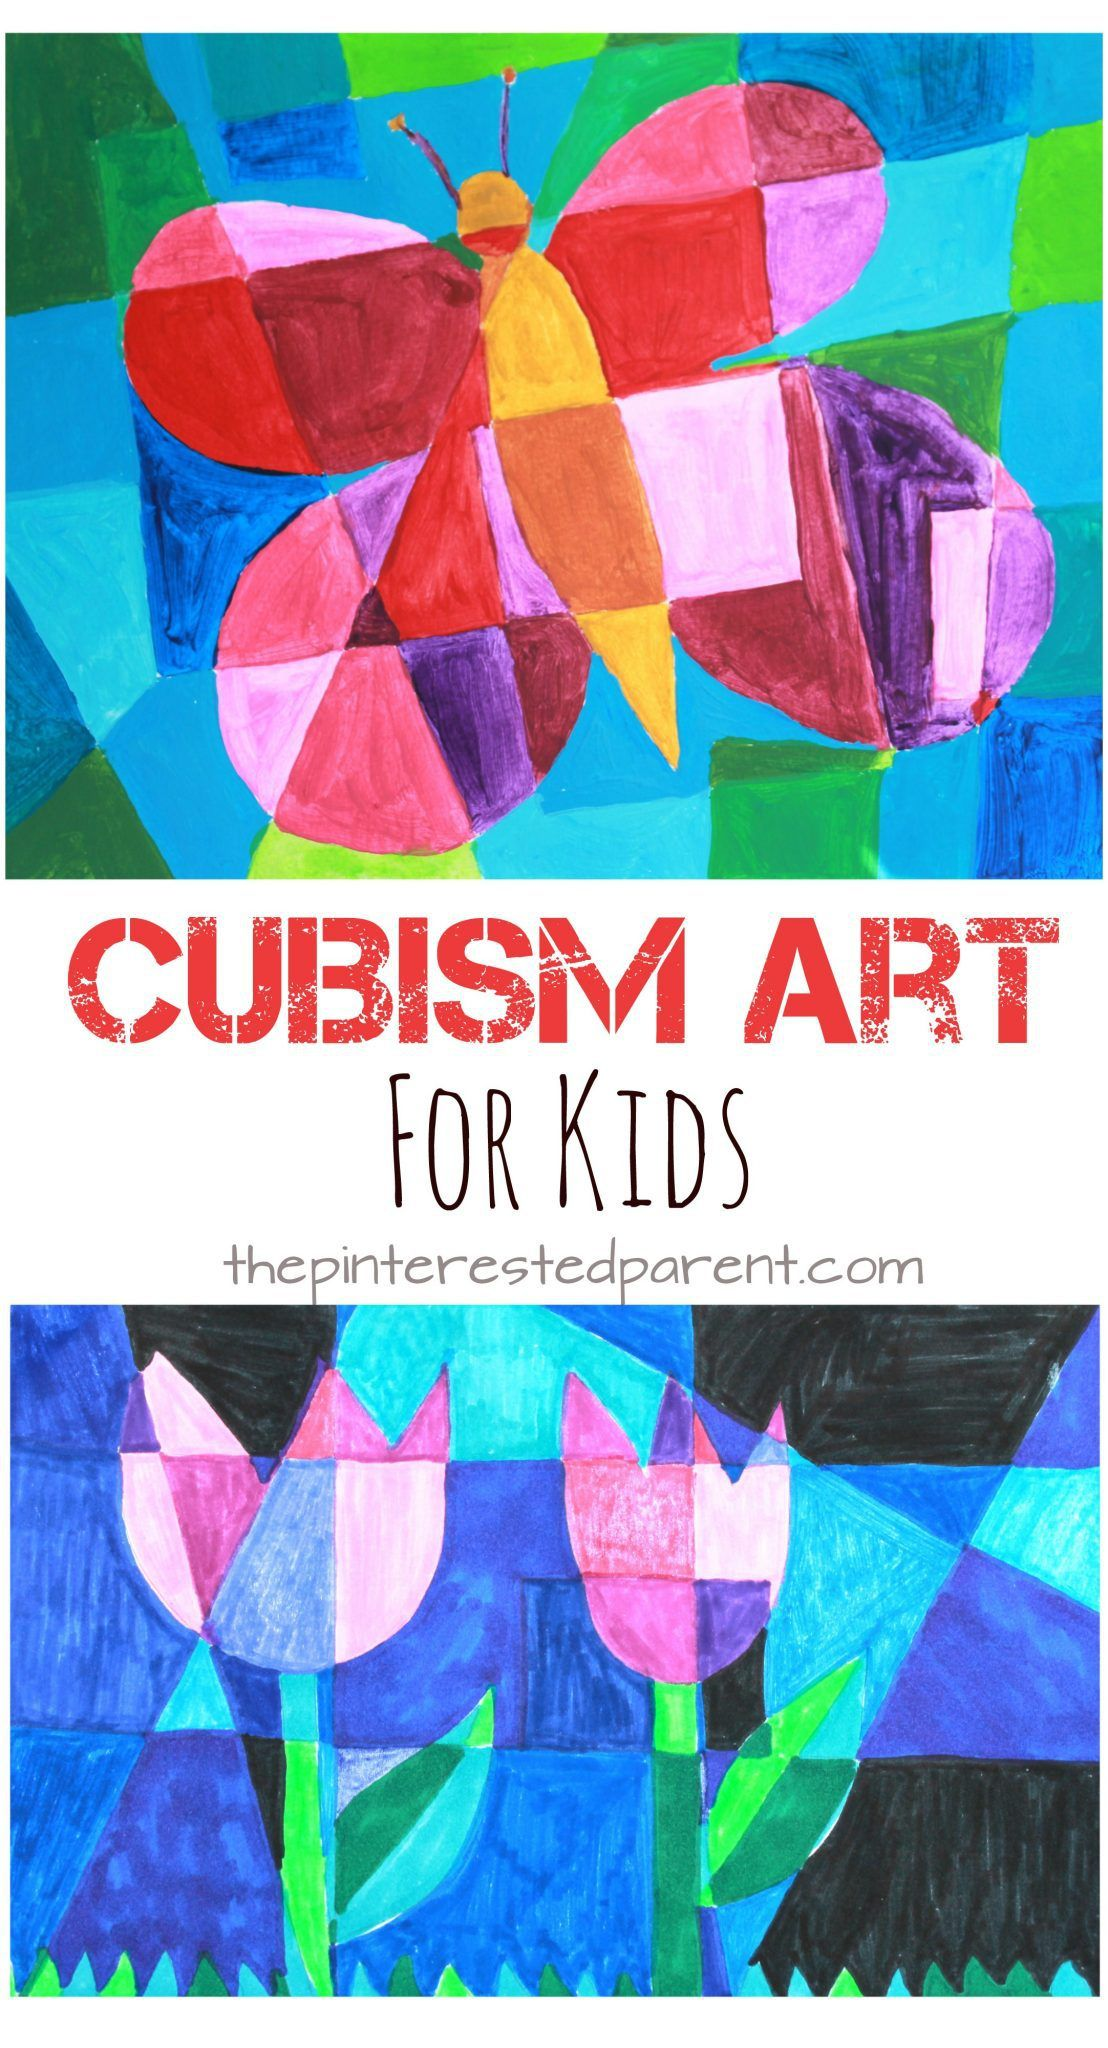 picasso artist inspired cubism art for kids spring arts crafts ideas butterflies and tulips. Black Bedroom Furniture Sets. Home Design Ideas